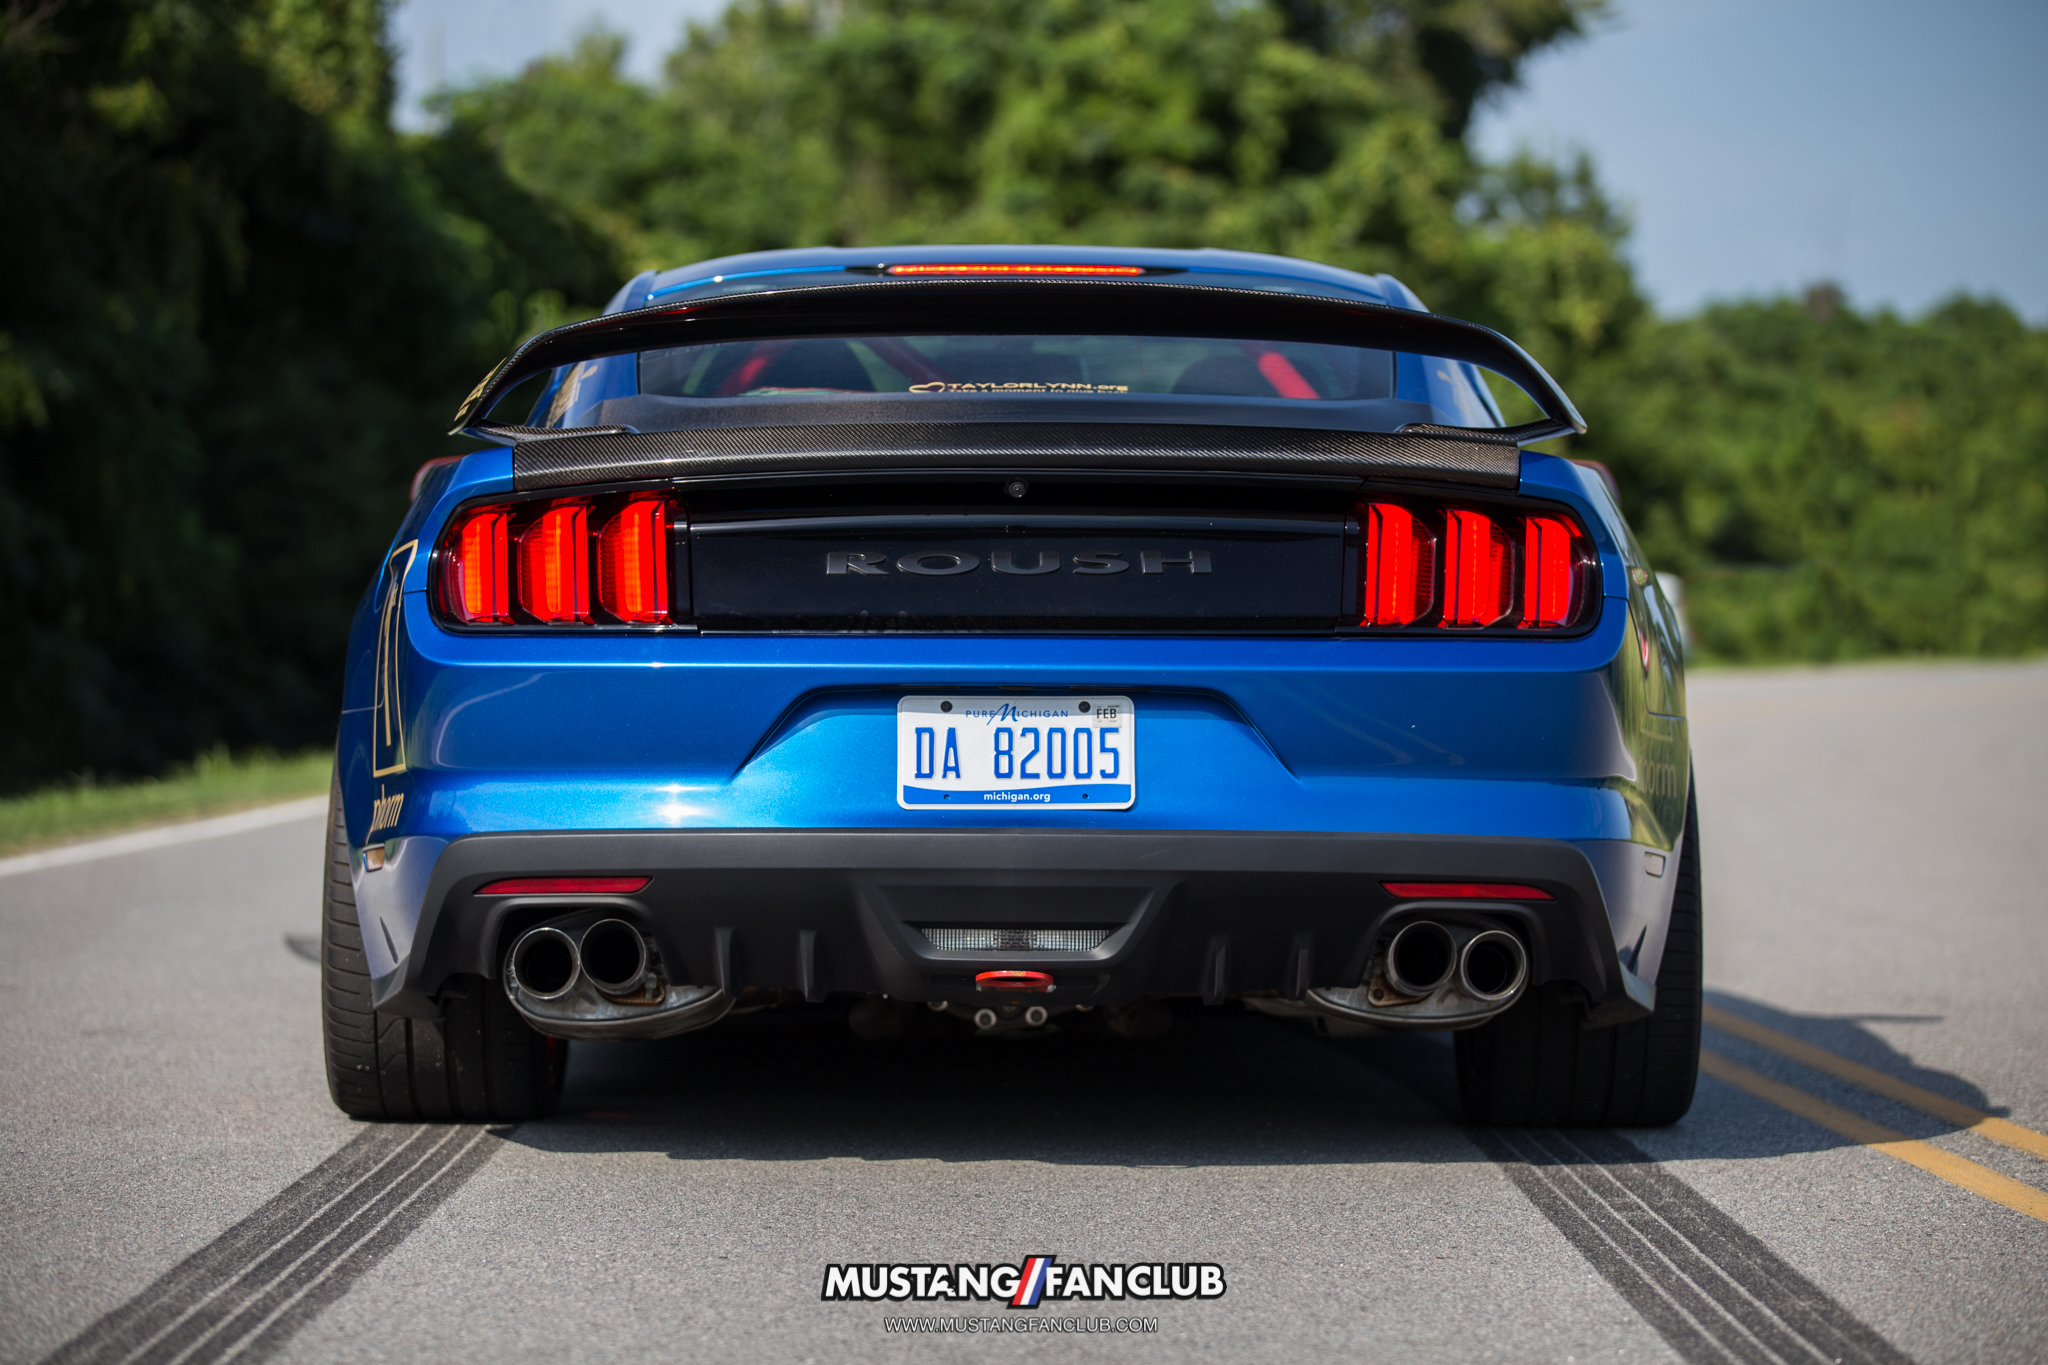 anderson composites carbon fiber gt350r spoiler trunk roush performance mustang fan club gold rush rally mustangfanclub